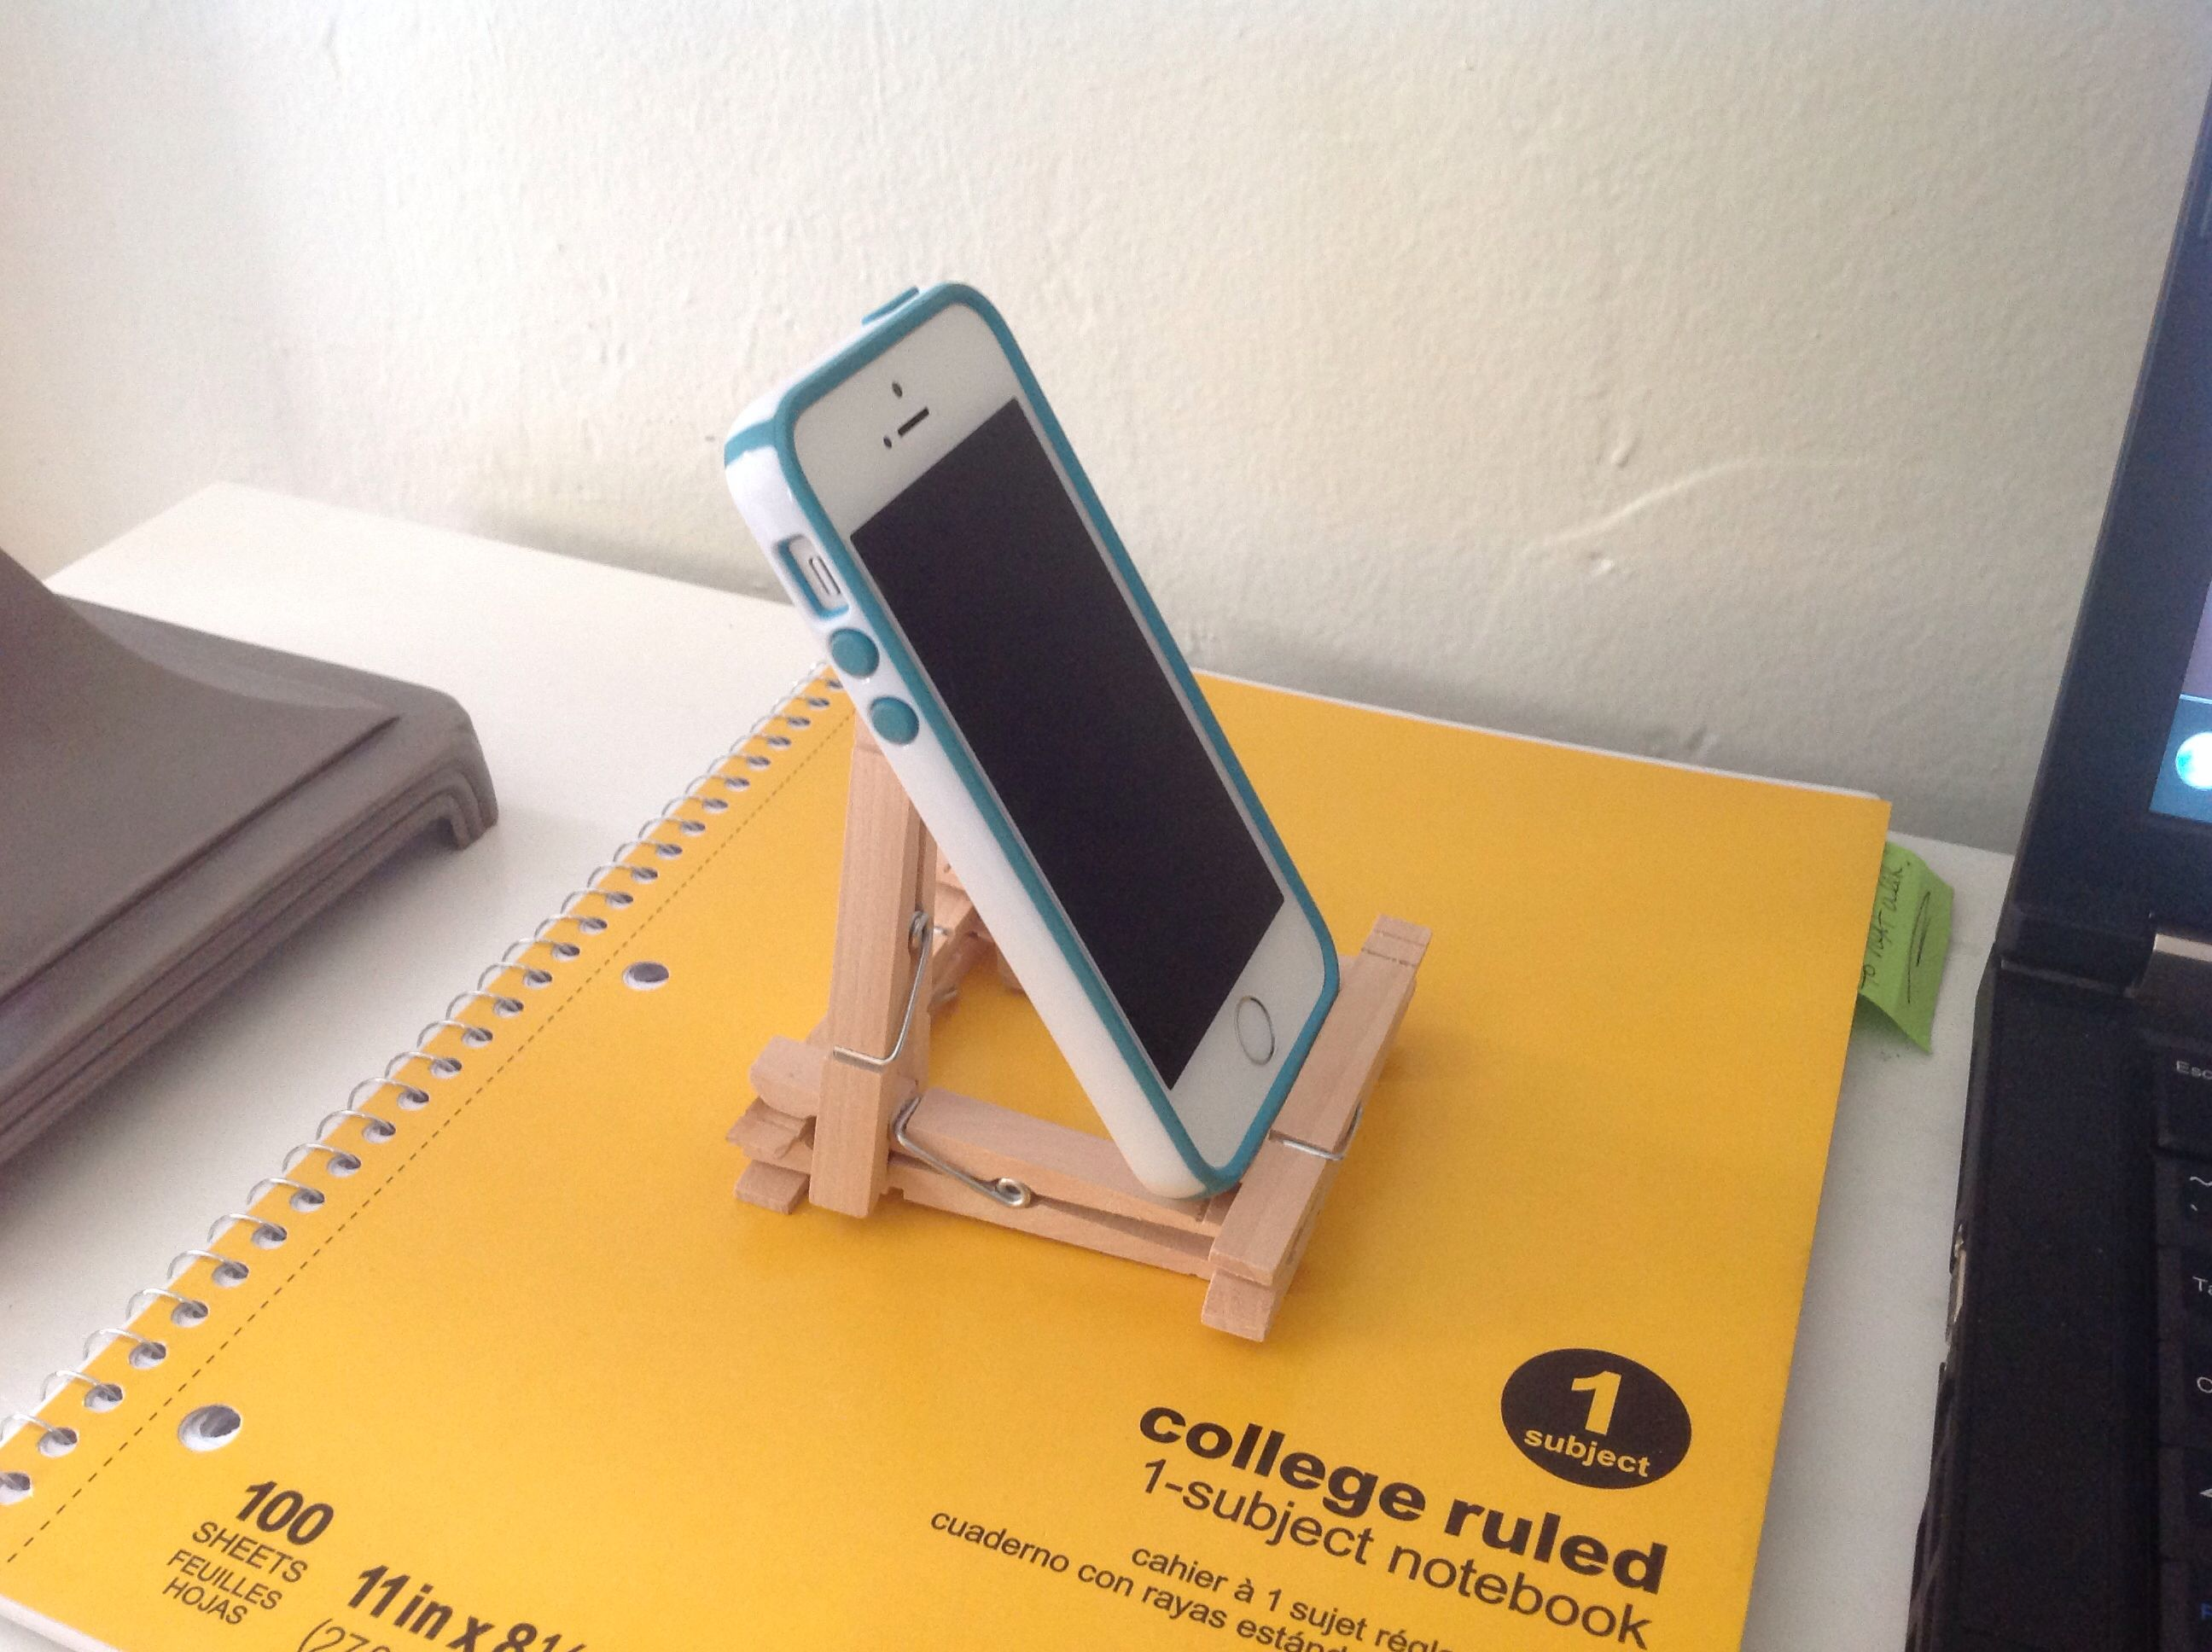 Diy iphone standbecause im too cheap to buy one